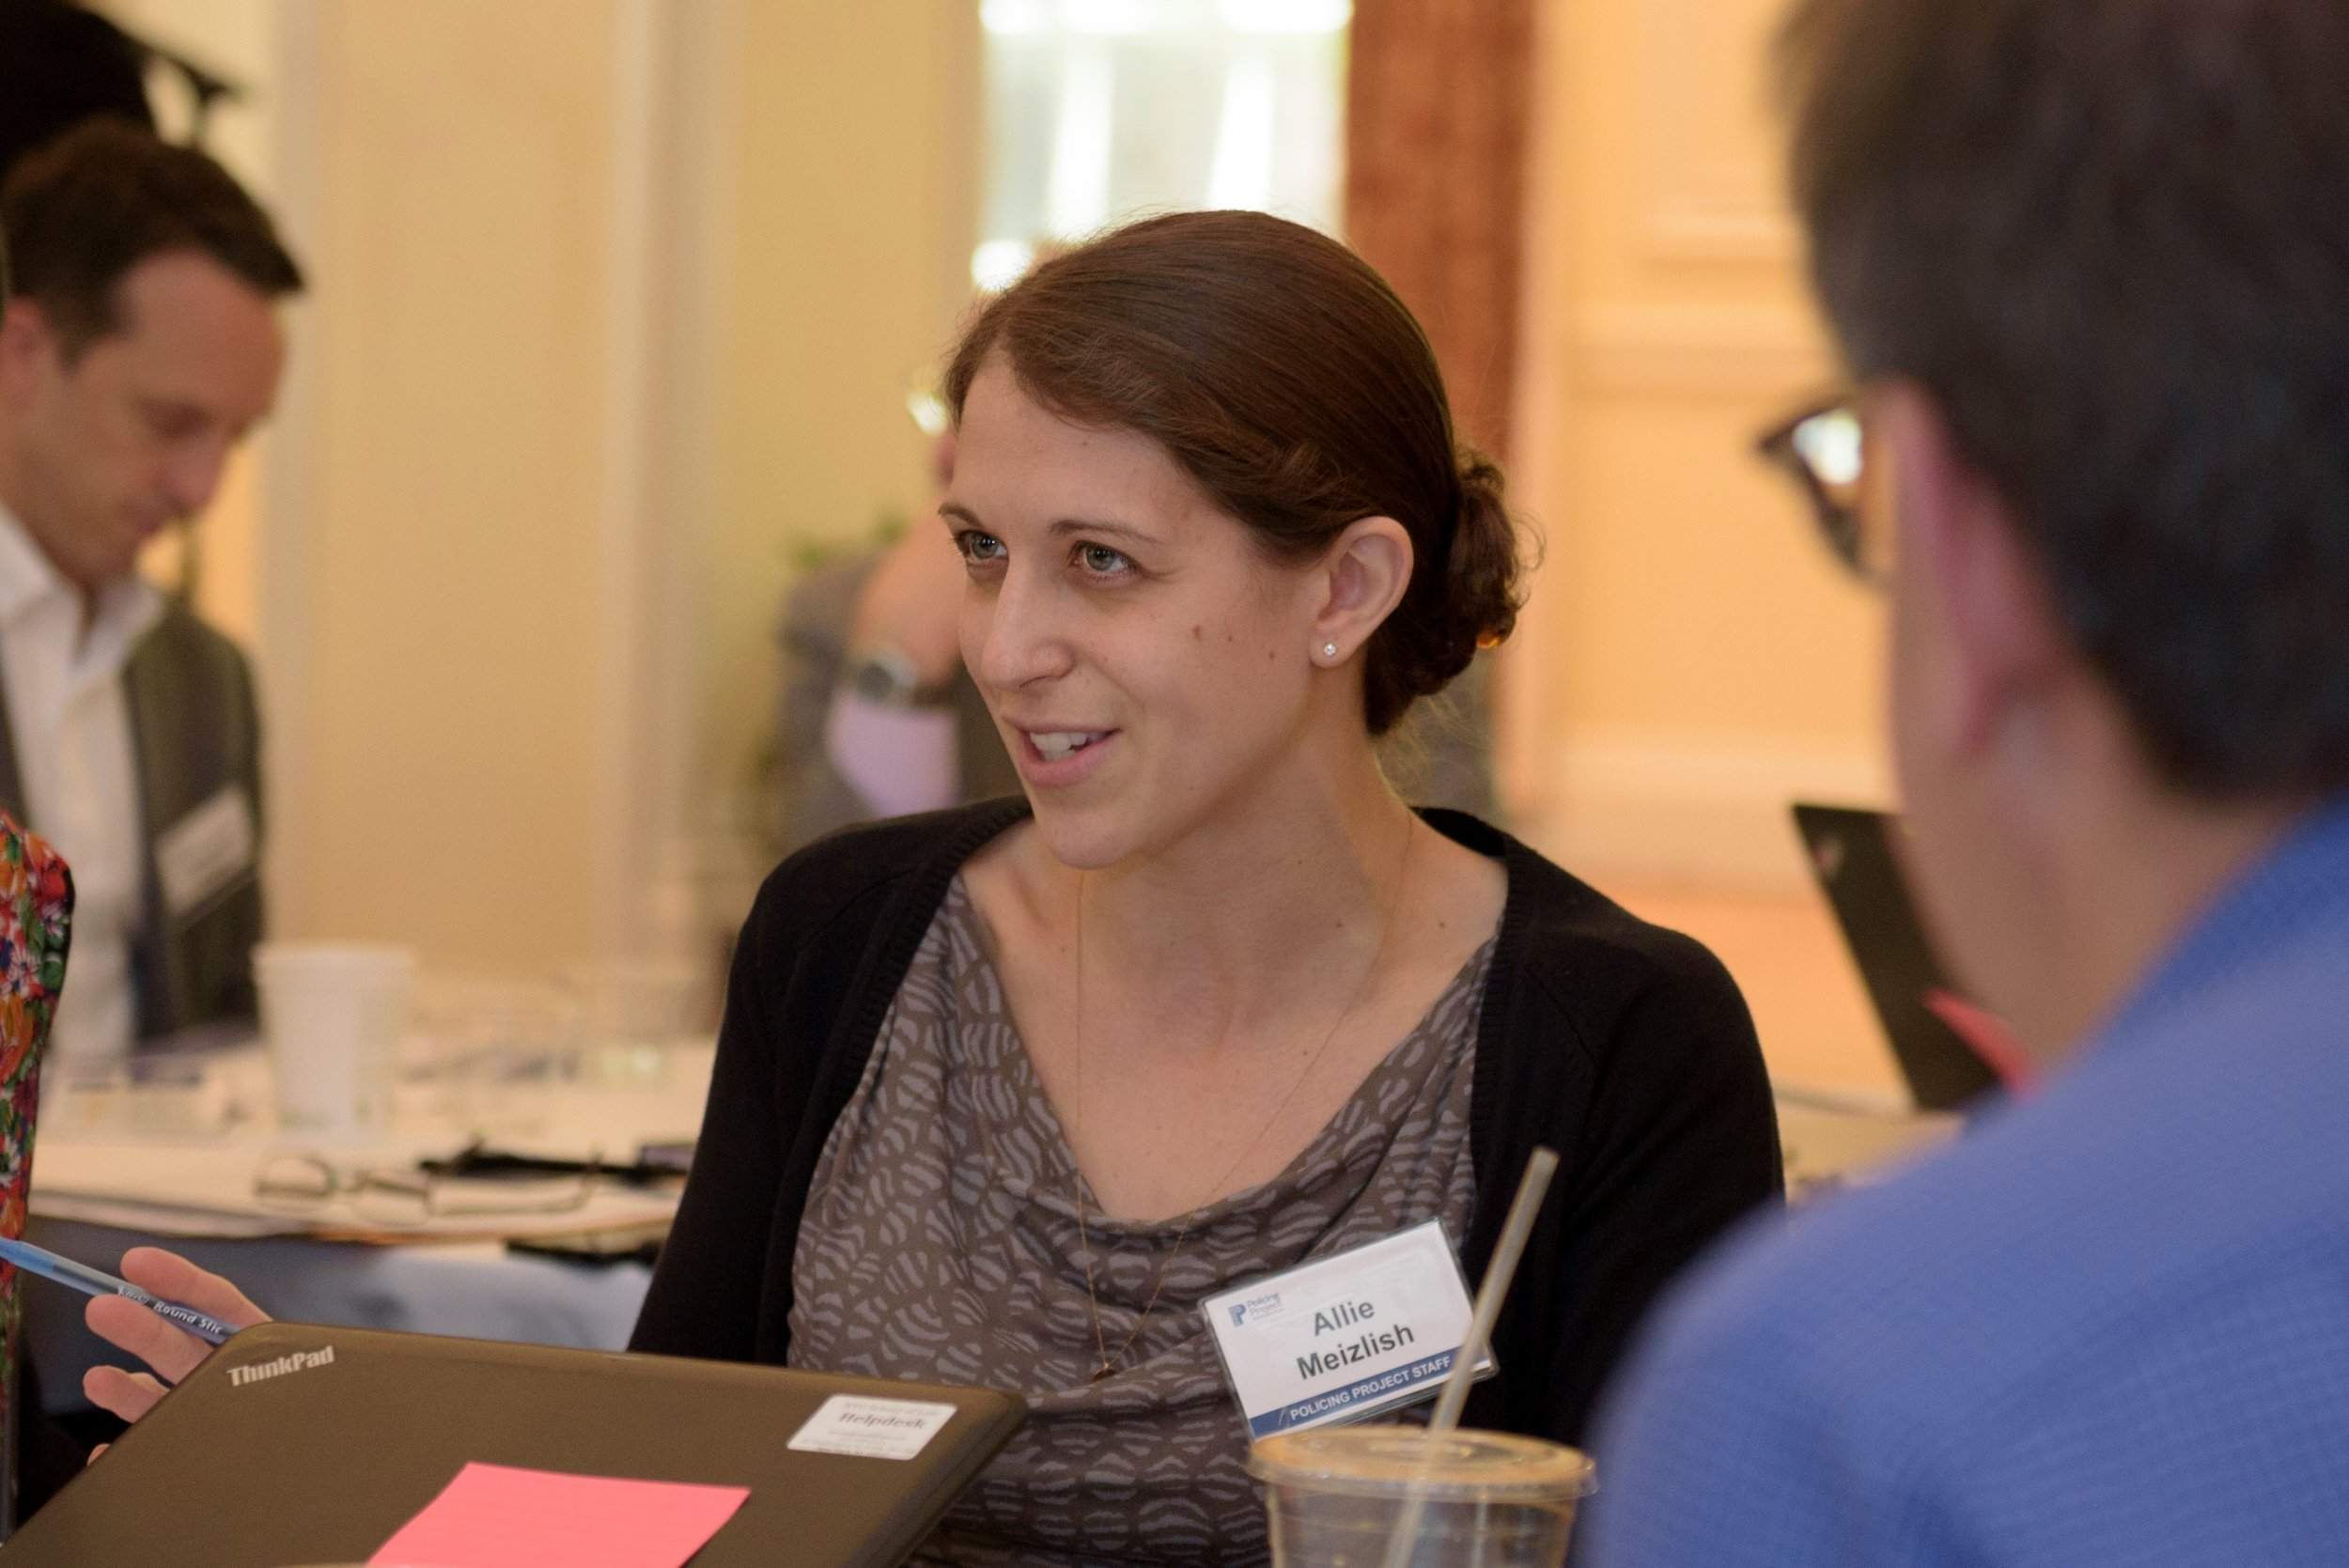 Policing Project Deputy Director Allie Meizlish at our recent community engagement convening.